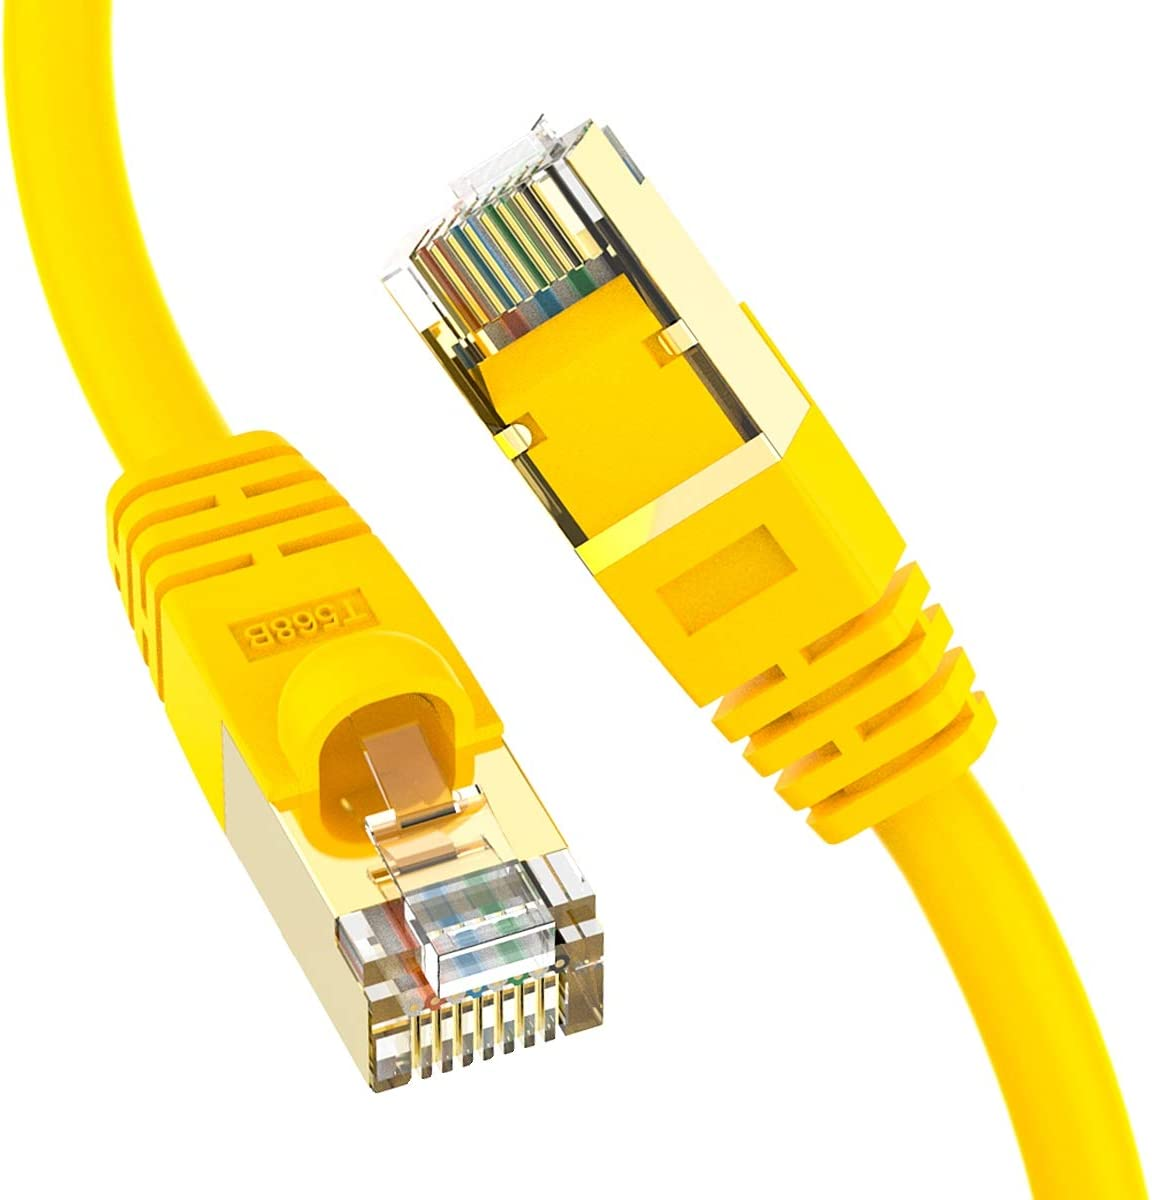 24AWG 40Gigabit//Sec Network//High Speed Internet Cable for Router 0.5 FT 5 Pack Modem,Gaming//2000 MHZ InstallerParts Ethernet Cable CAT8 Cable Professional Series Red